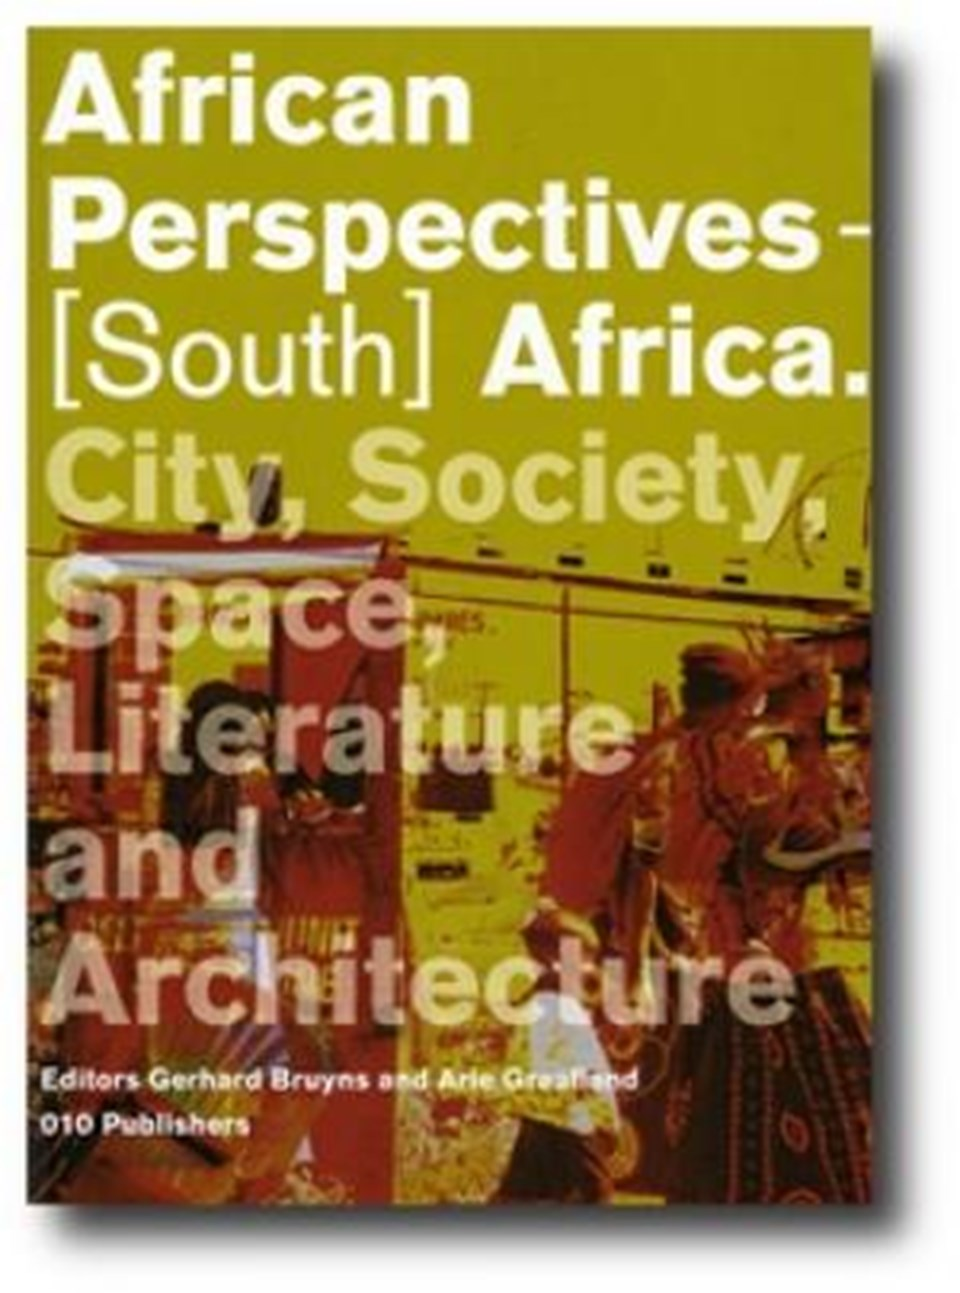 African Perspectives - (South) Africa.